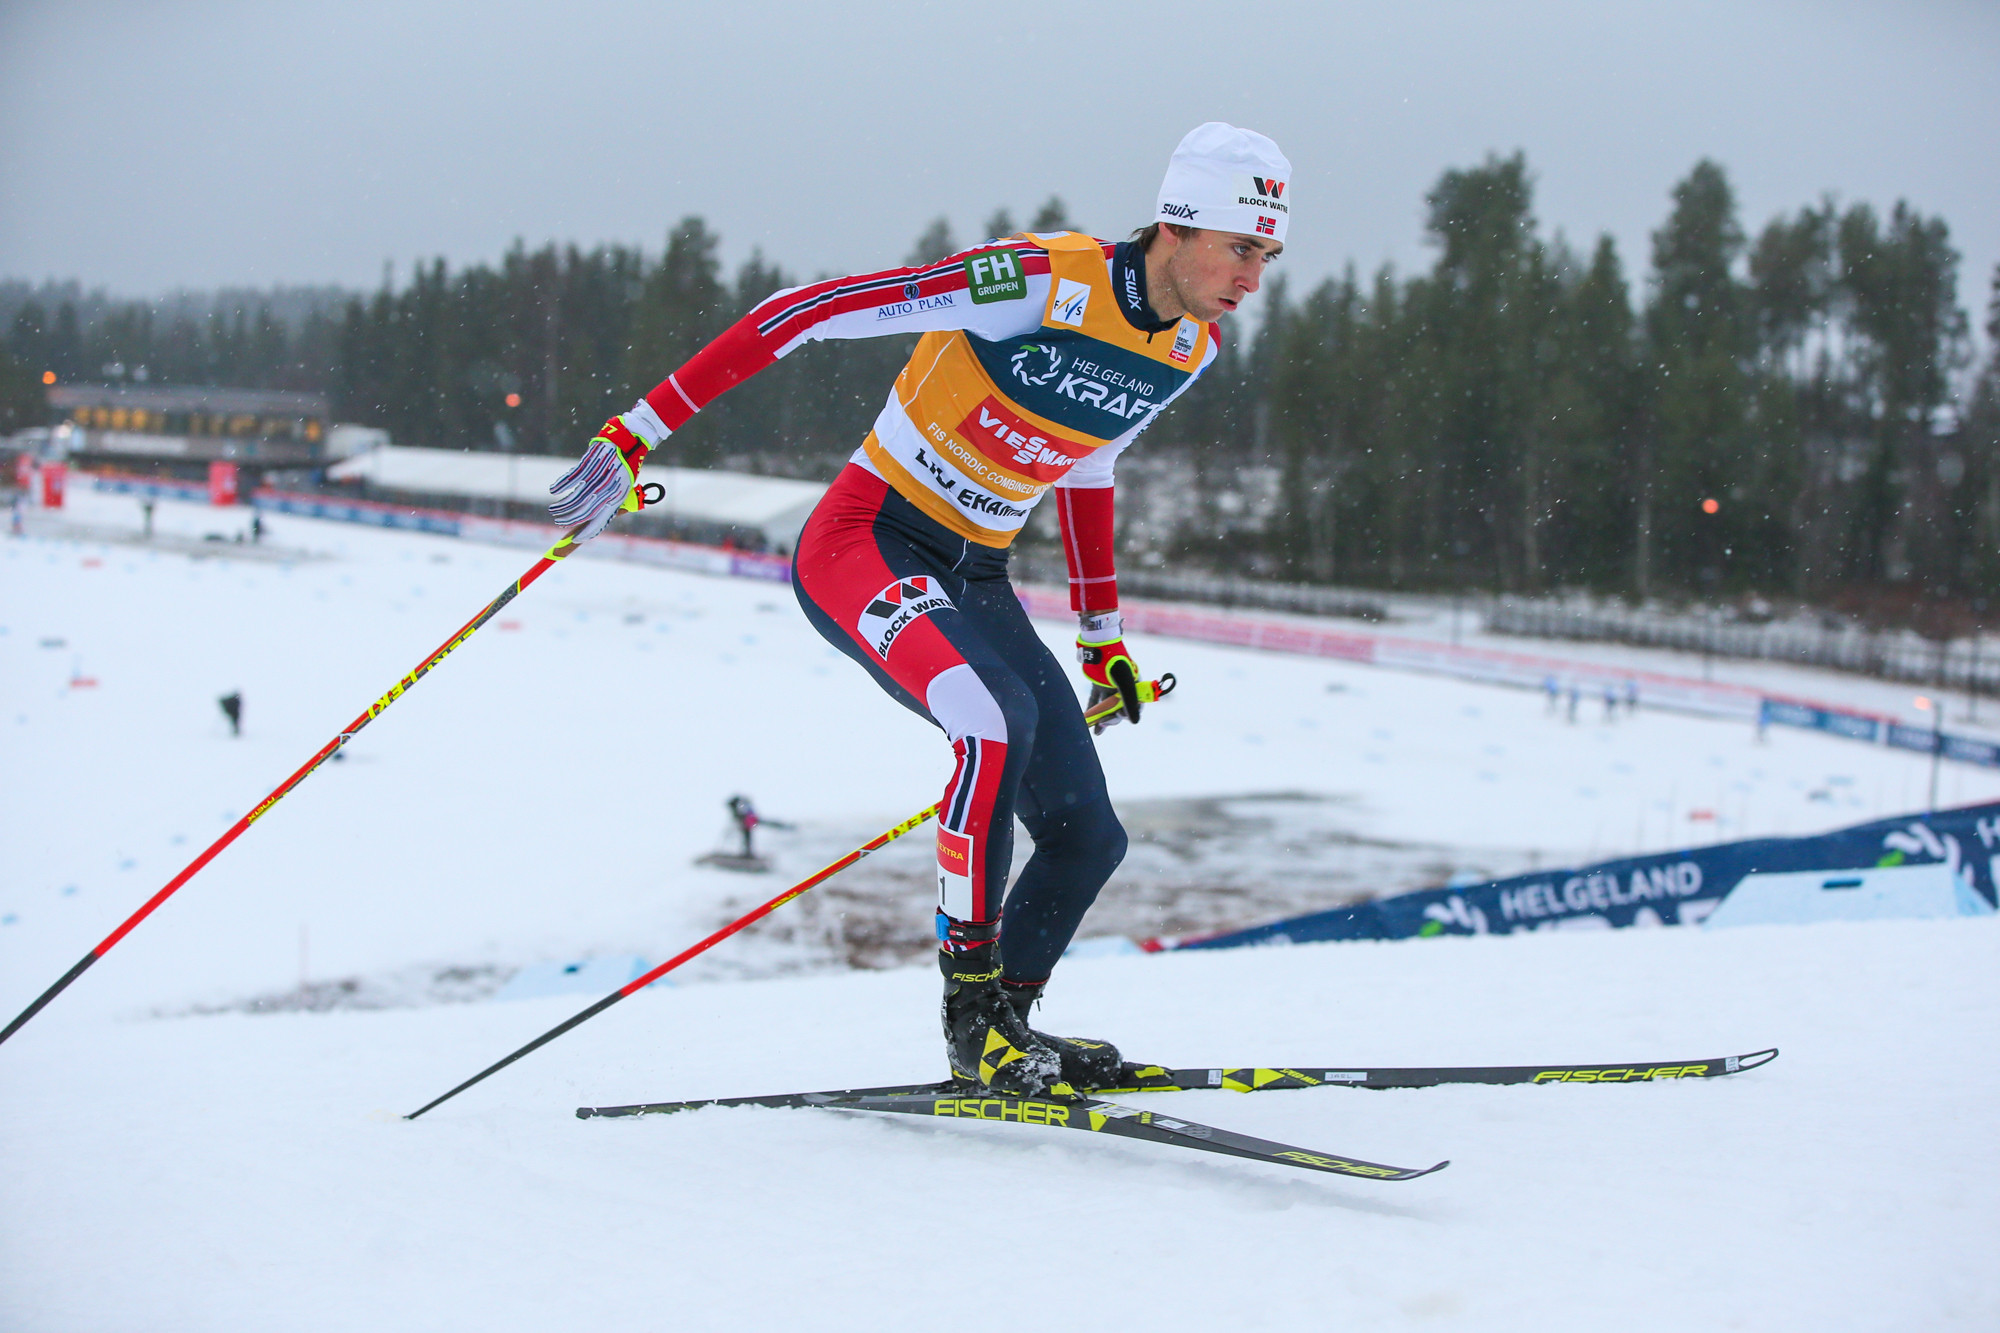 Riiber earns repeat victory at Nordic Combined World Cup in Otepää